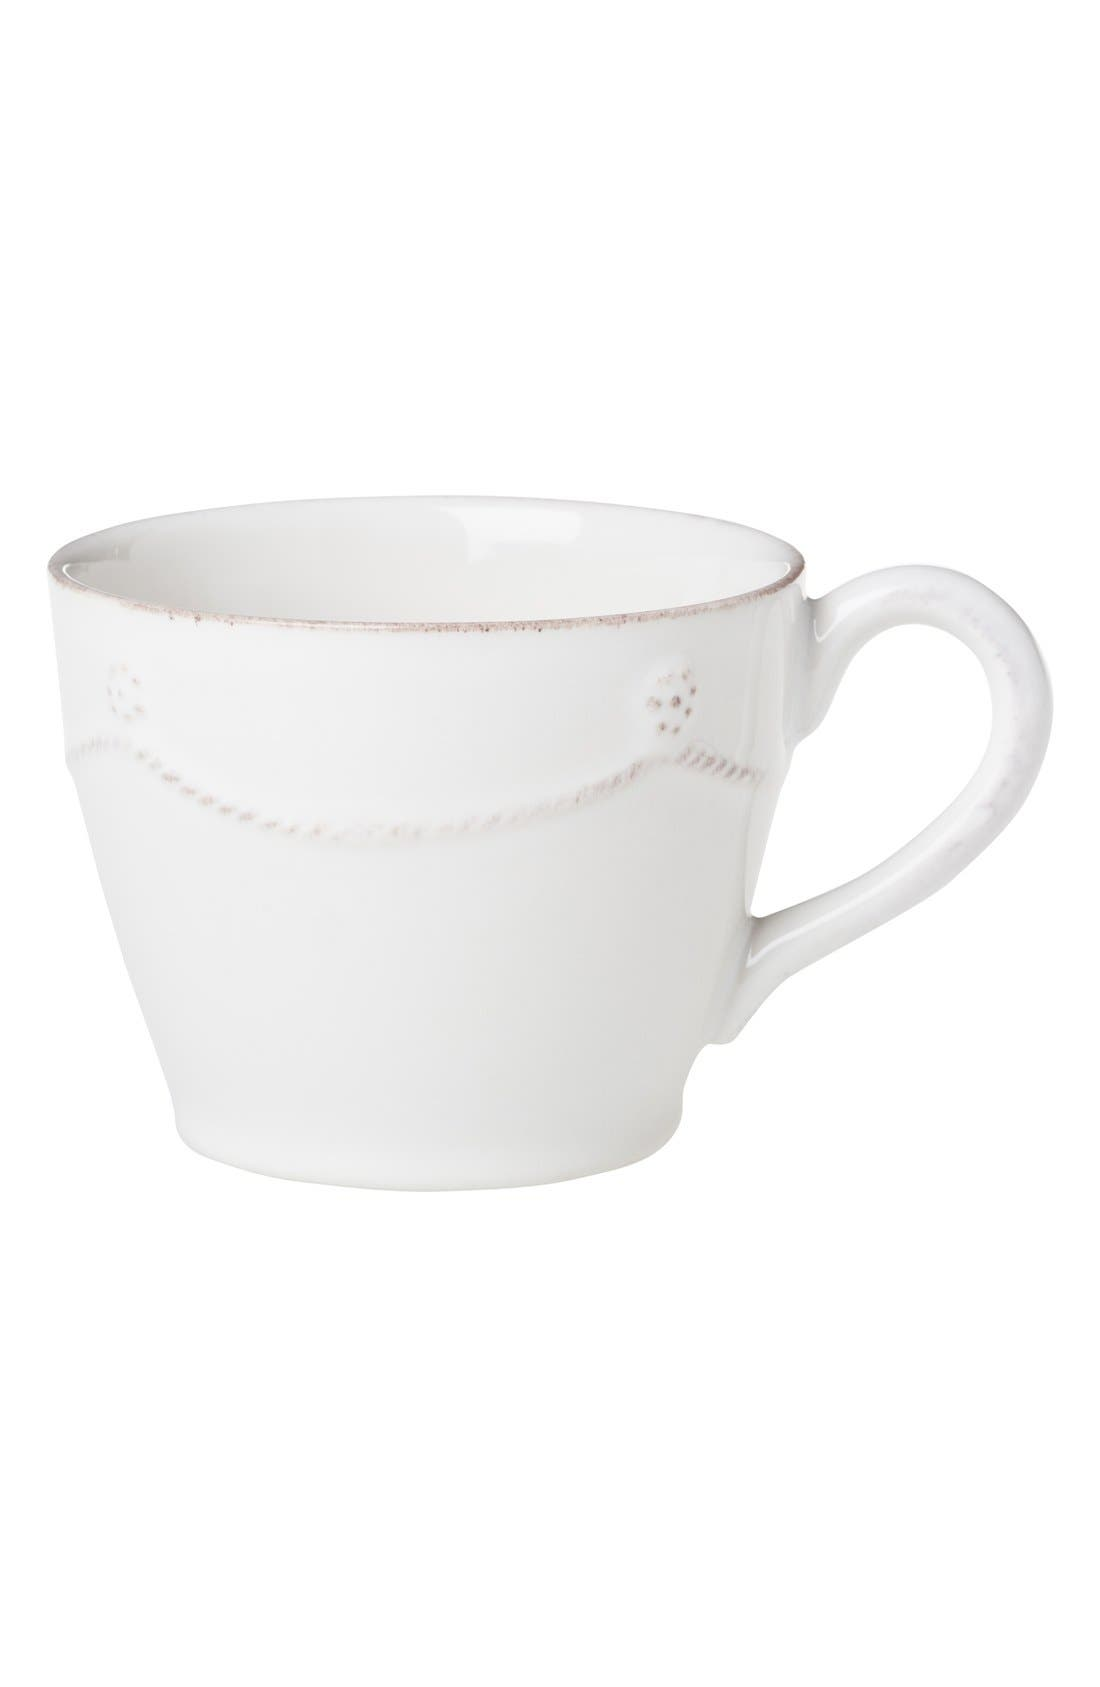 'Berry and Thread' Tea &Coffee Cup,                         Main,                         color, 100